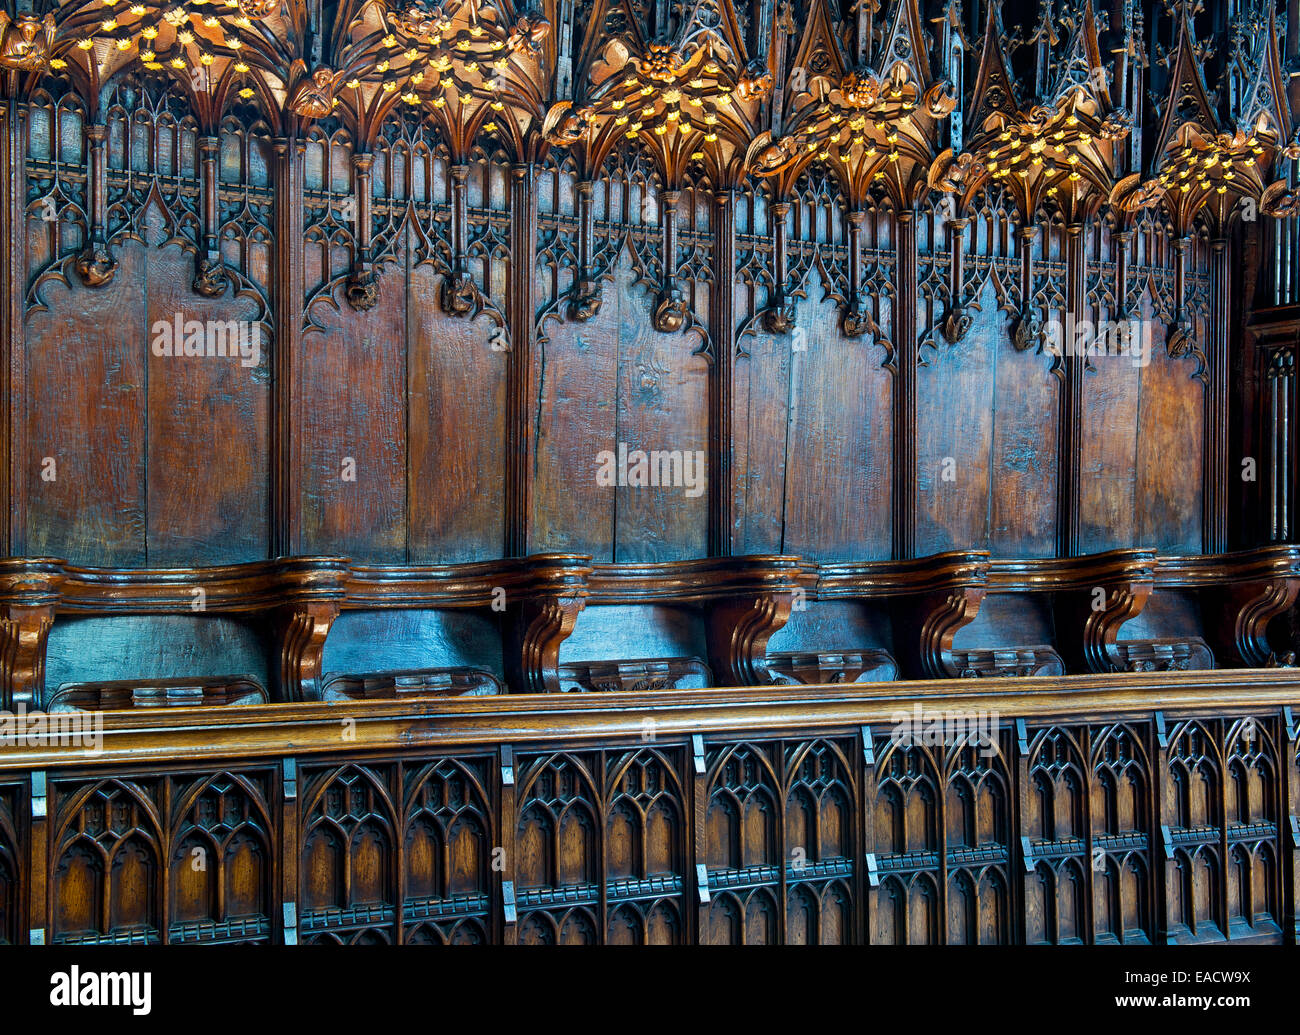 Choir stalls in St Mary's Church, Nantwich, Cheshire, England UK - Stock Image